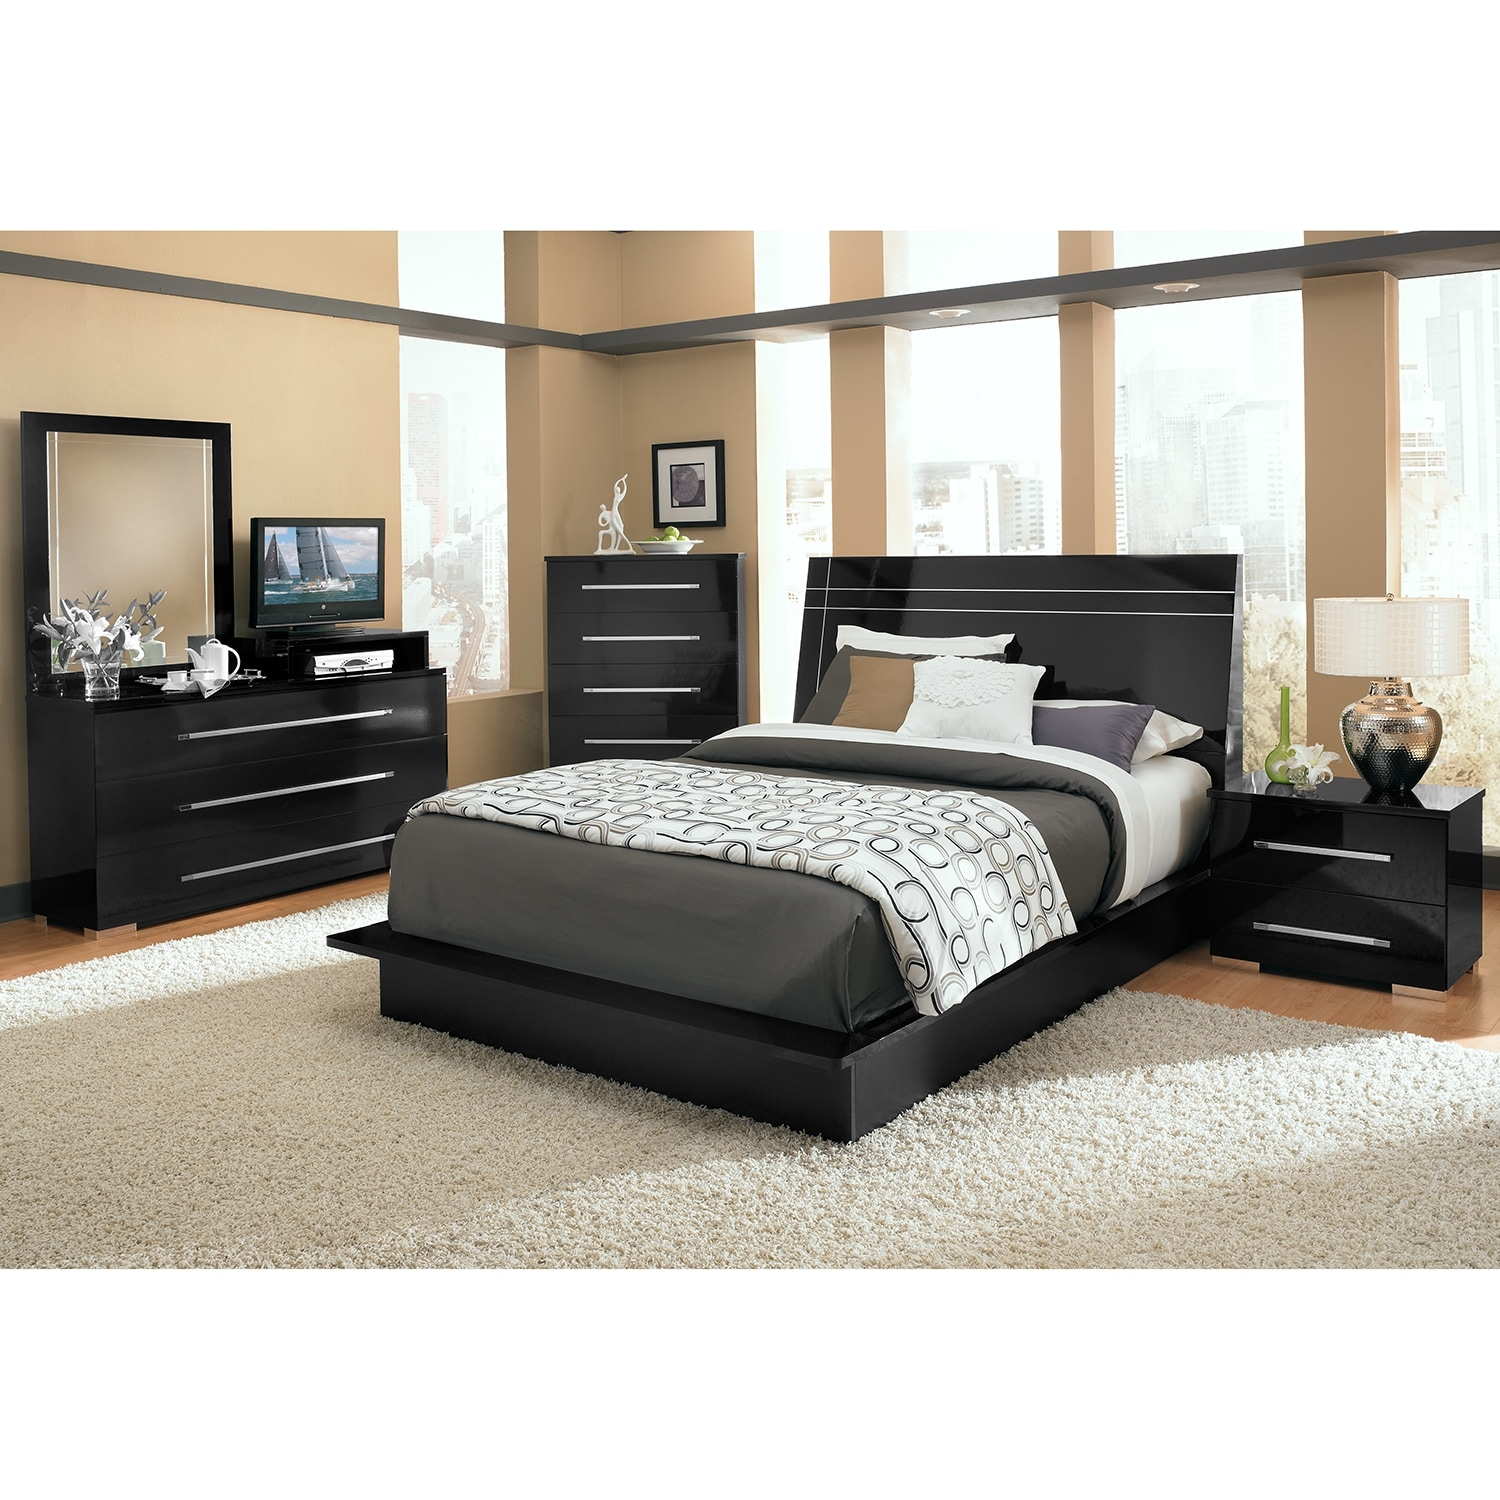 Dimora queen panel bed black american signature furniture for Furniture queen bedroom sets